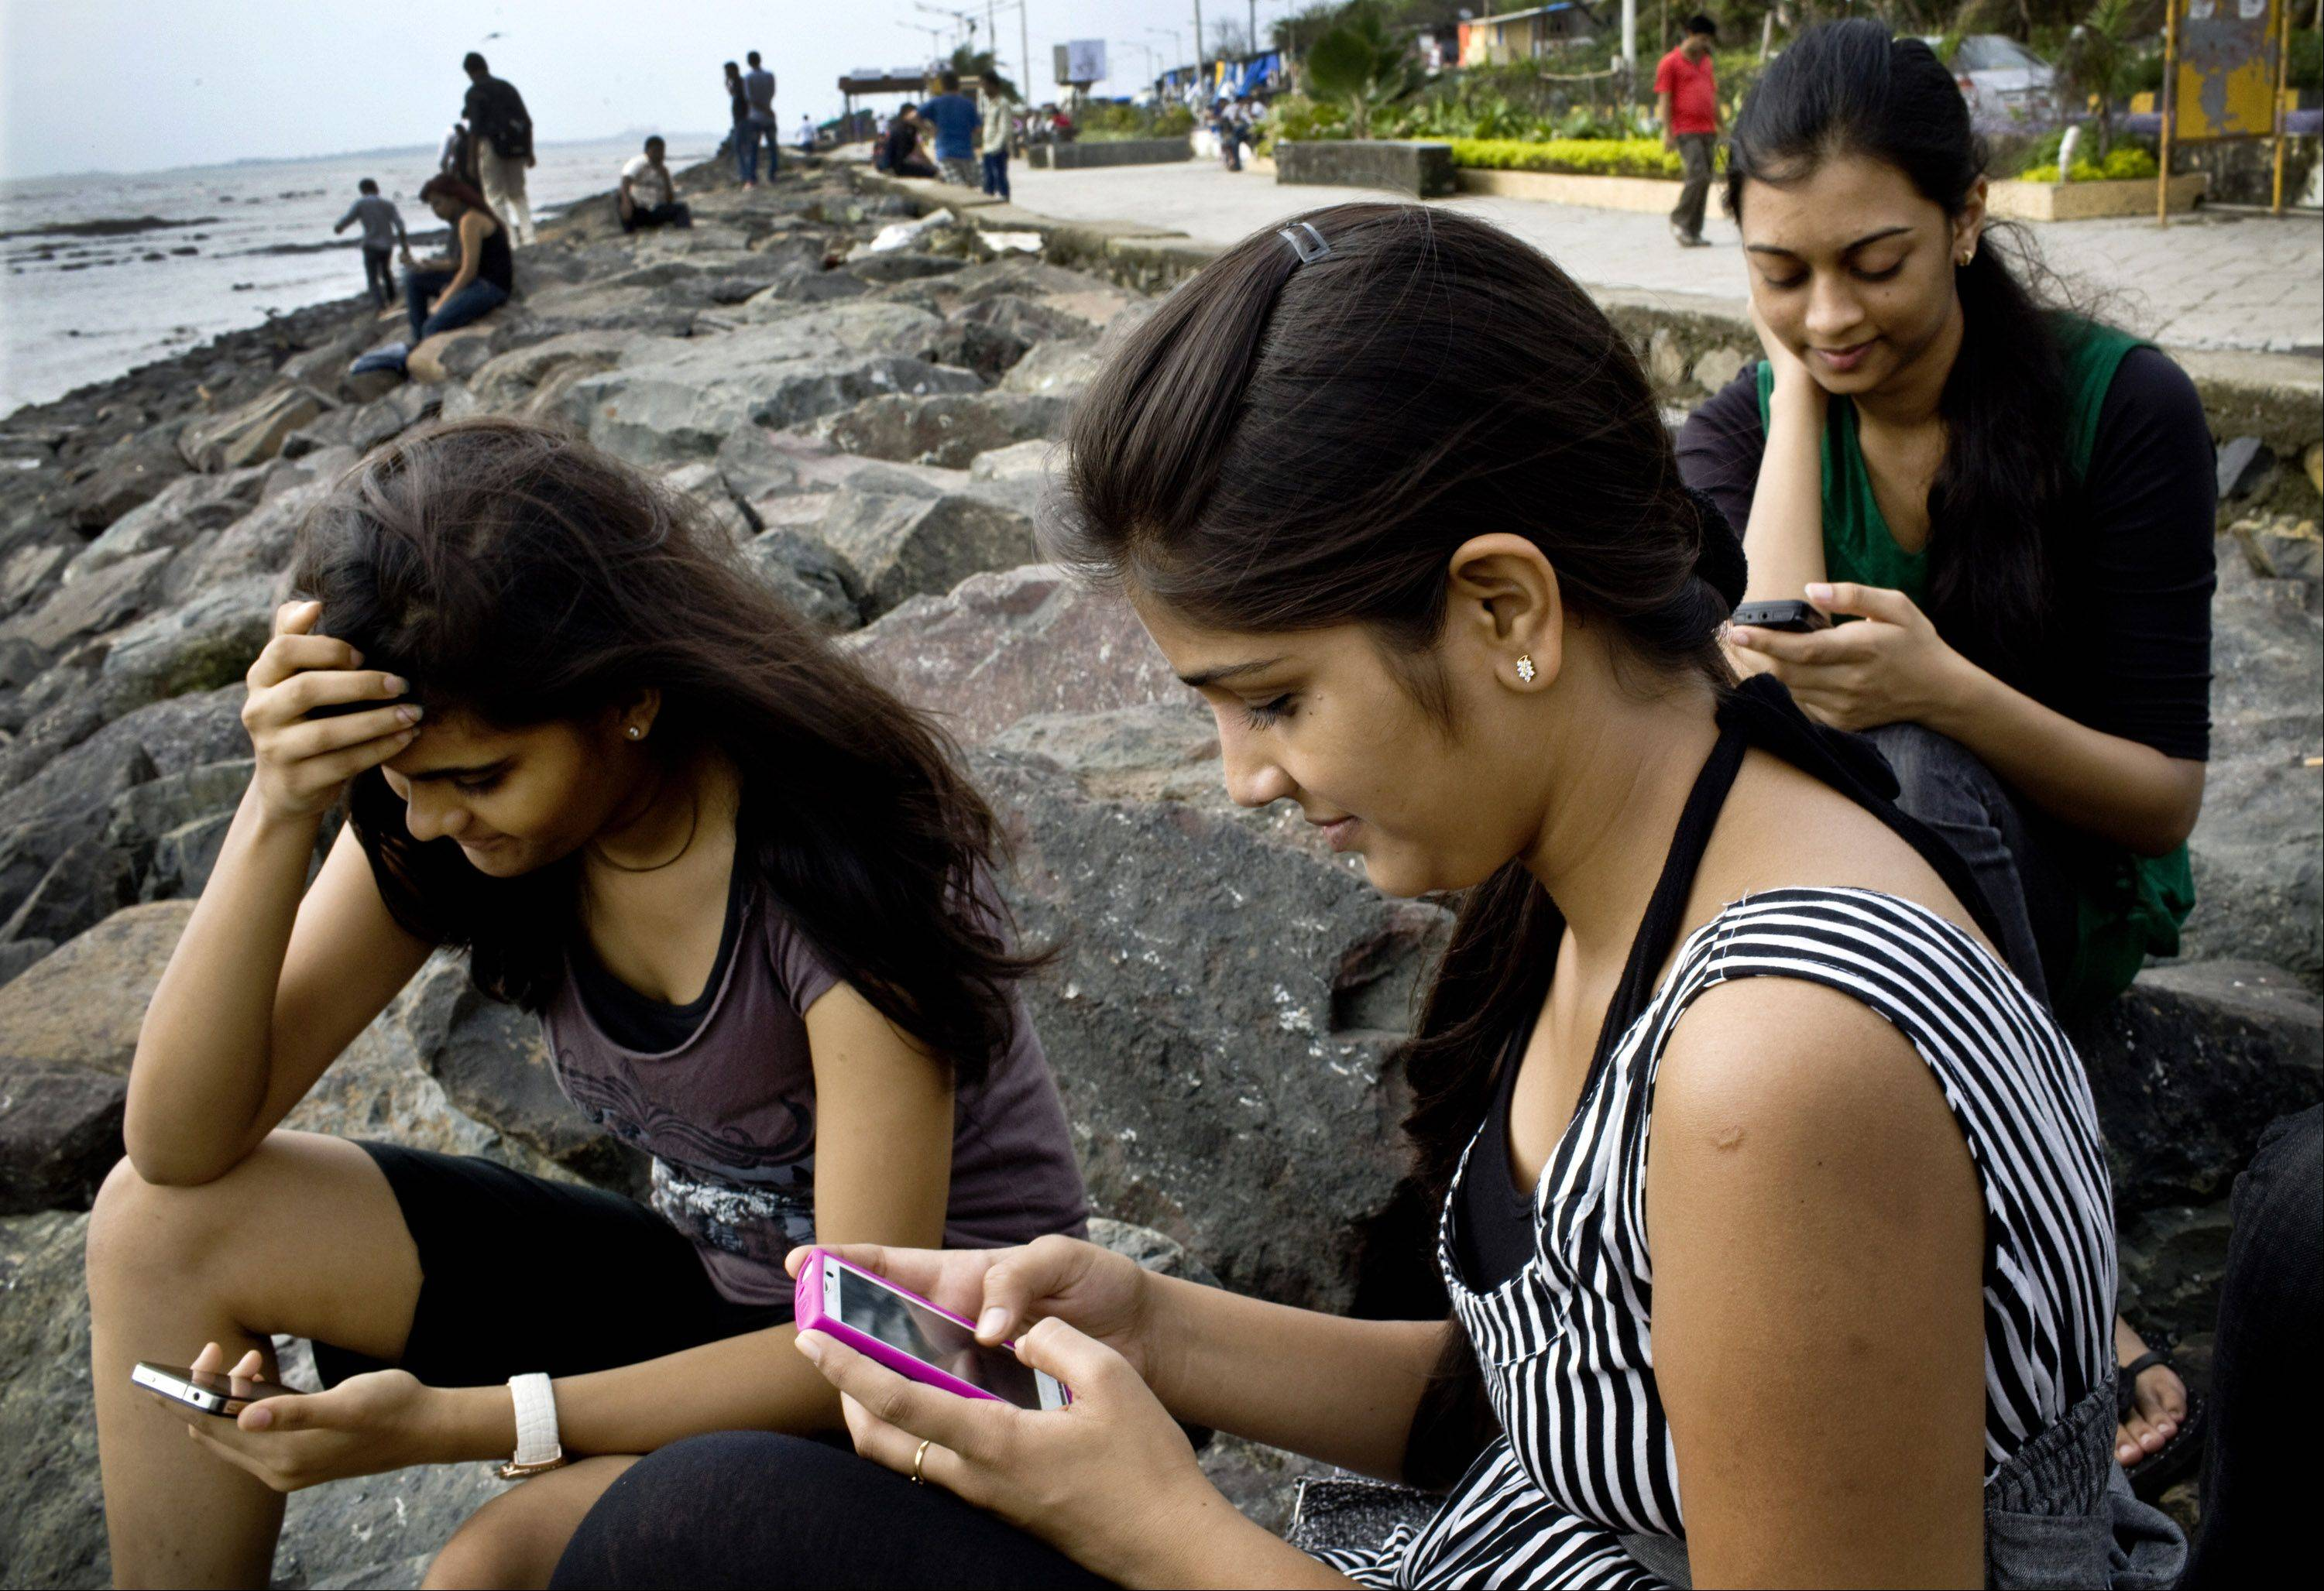 College students Saloni Shah, 18, from left, Roshani Munat, 18 and Shruti Jain, 19, check Facebook accounts on their smartphones in Mumbai, India, on Wednesday. India has 32 million Facebook users, according to socialbakers.com.